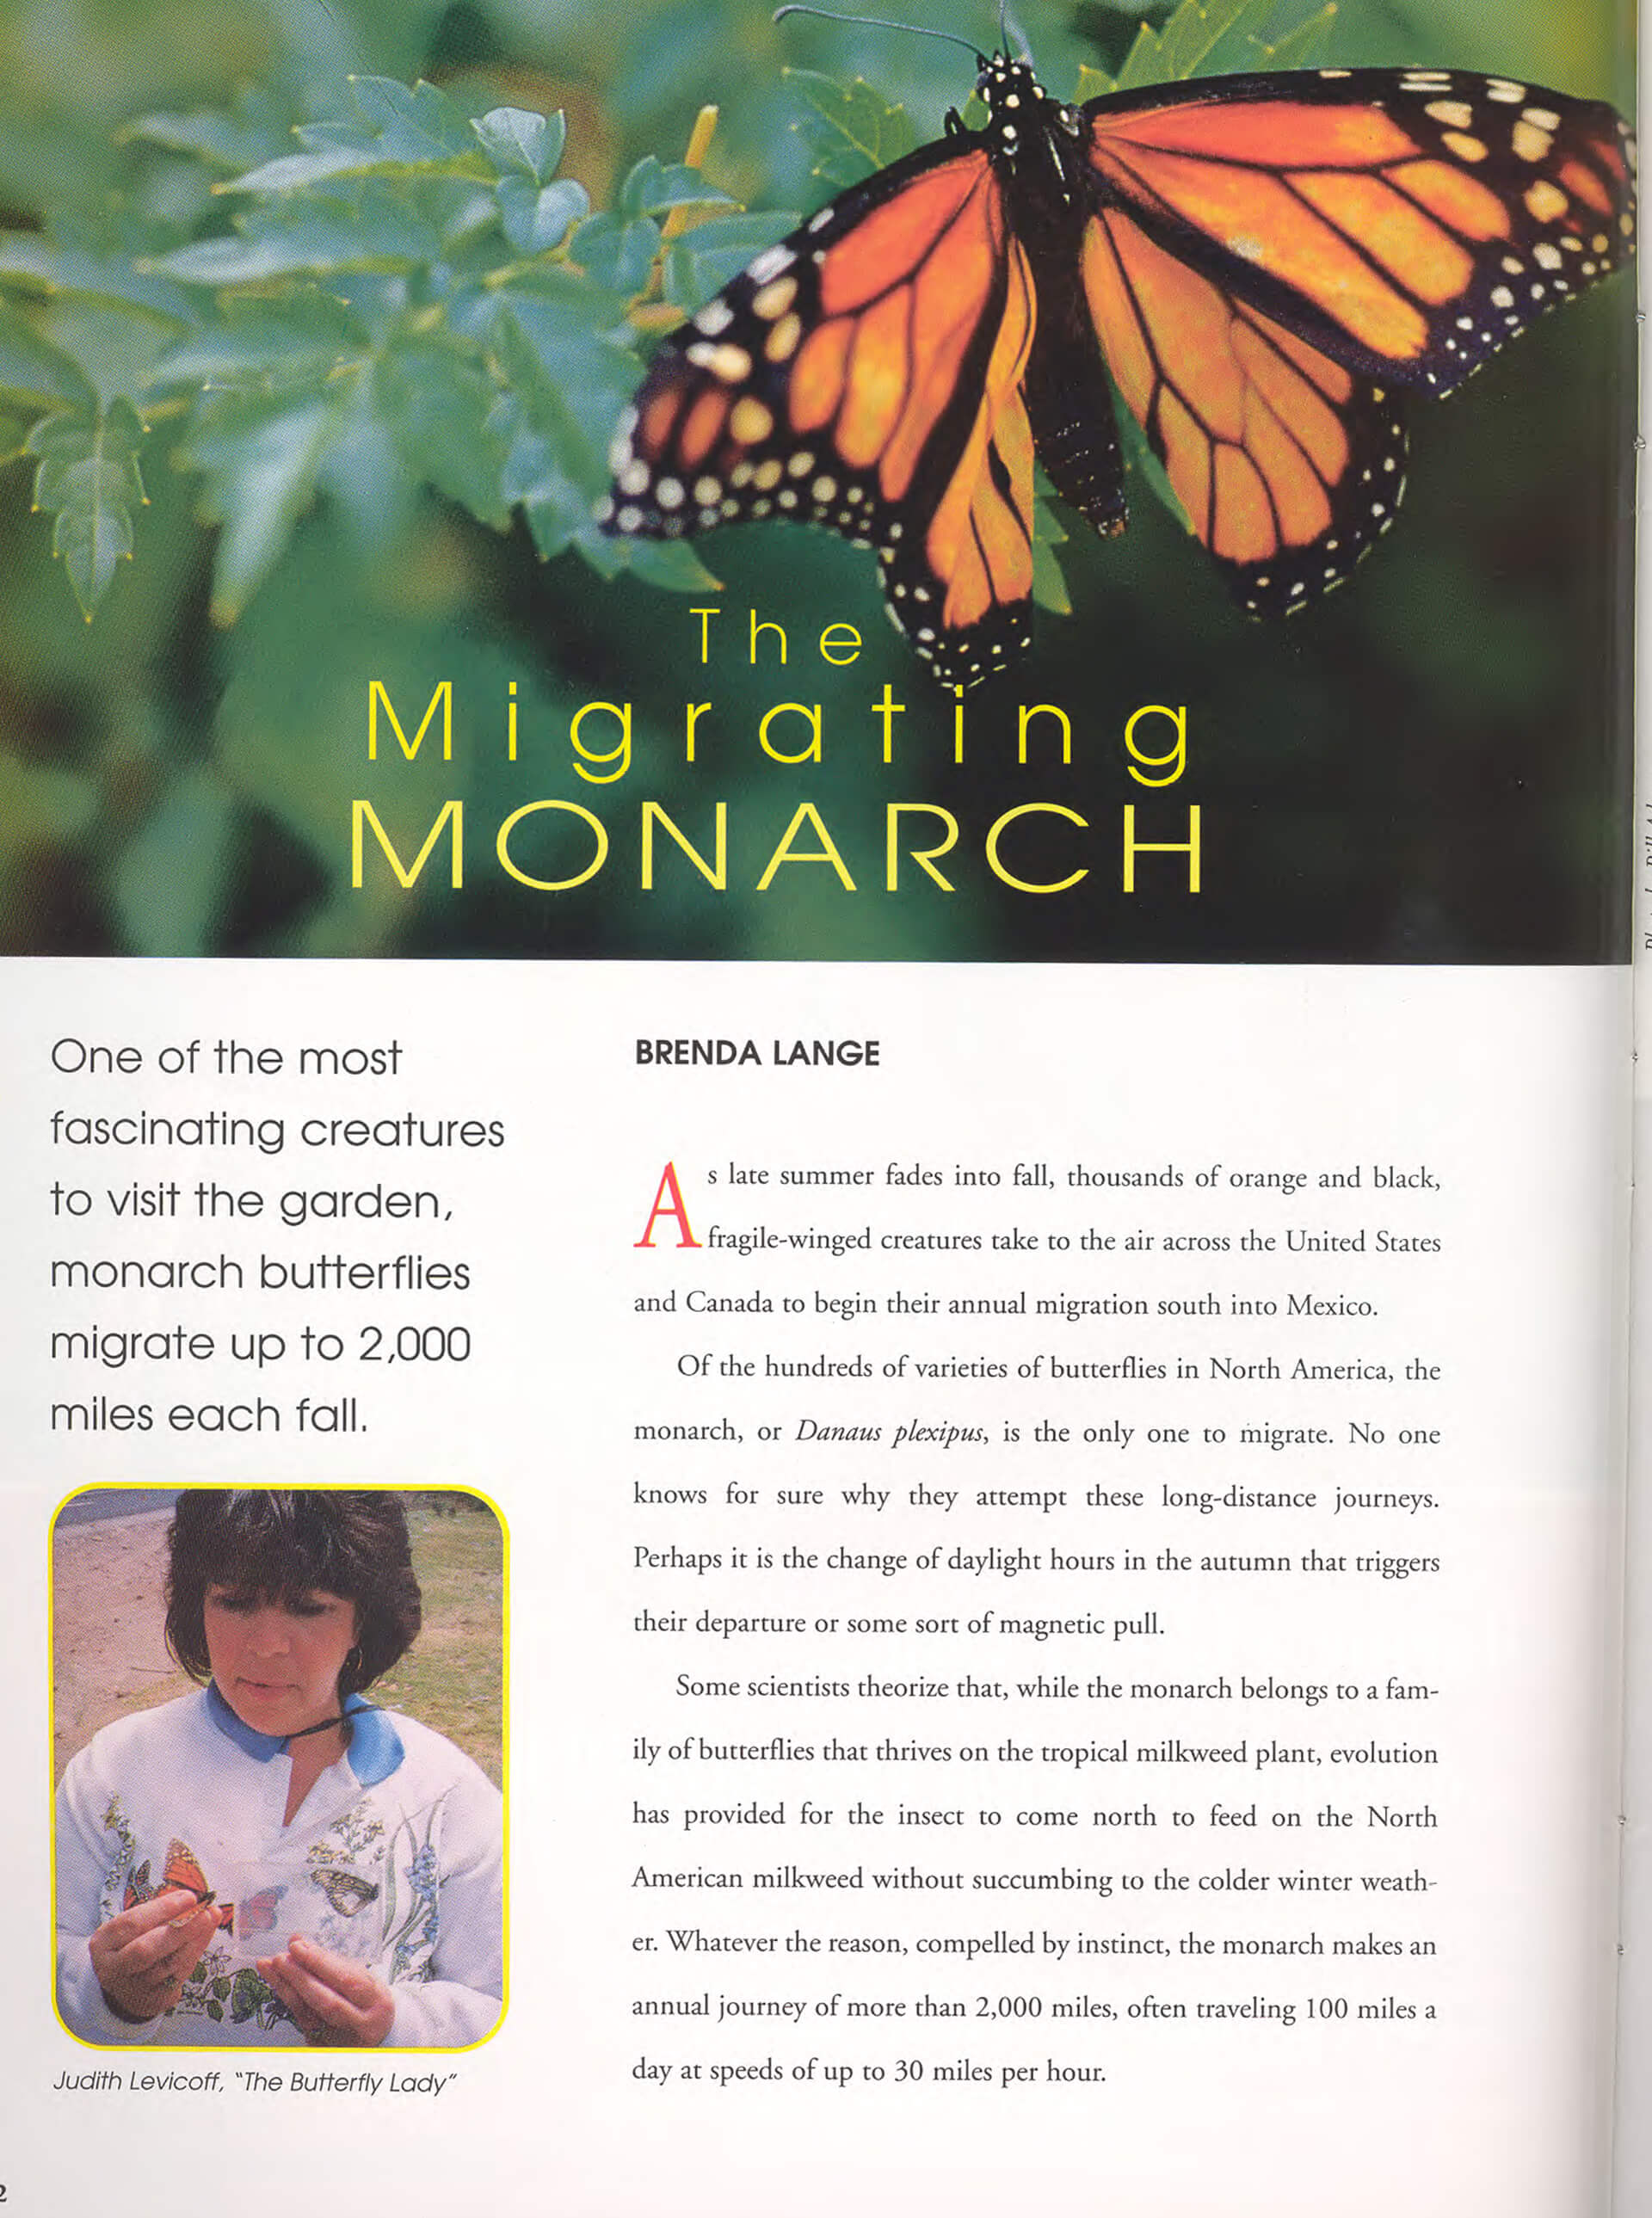 The Migrating Monarch